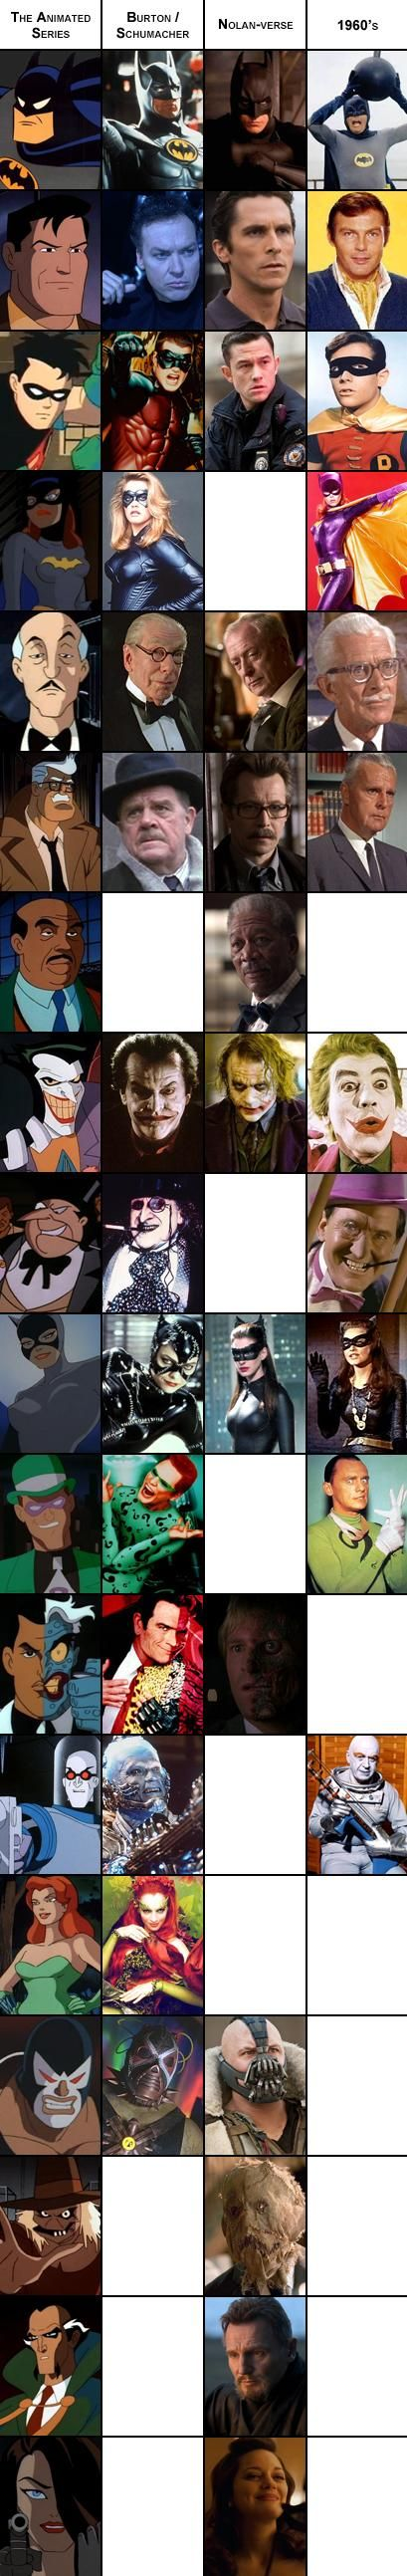 Visualized: Nolan-verse Batman cast vs Animated Series vs Other Film.  Nolan > everything else